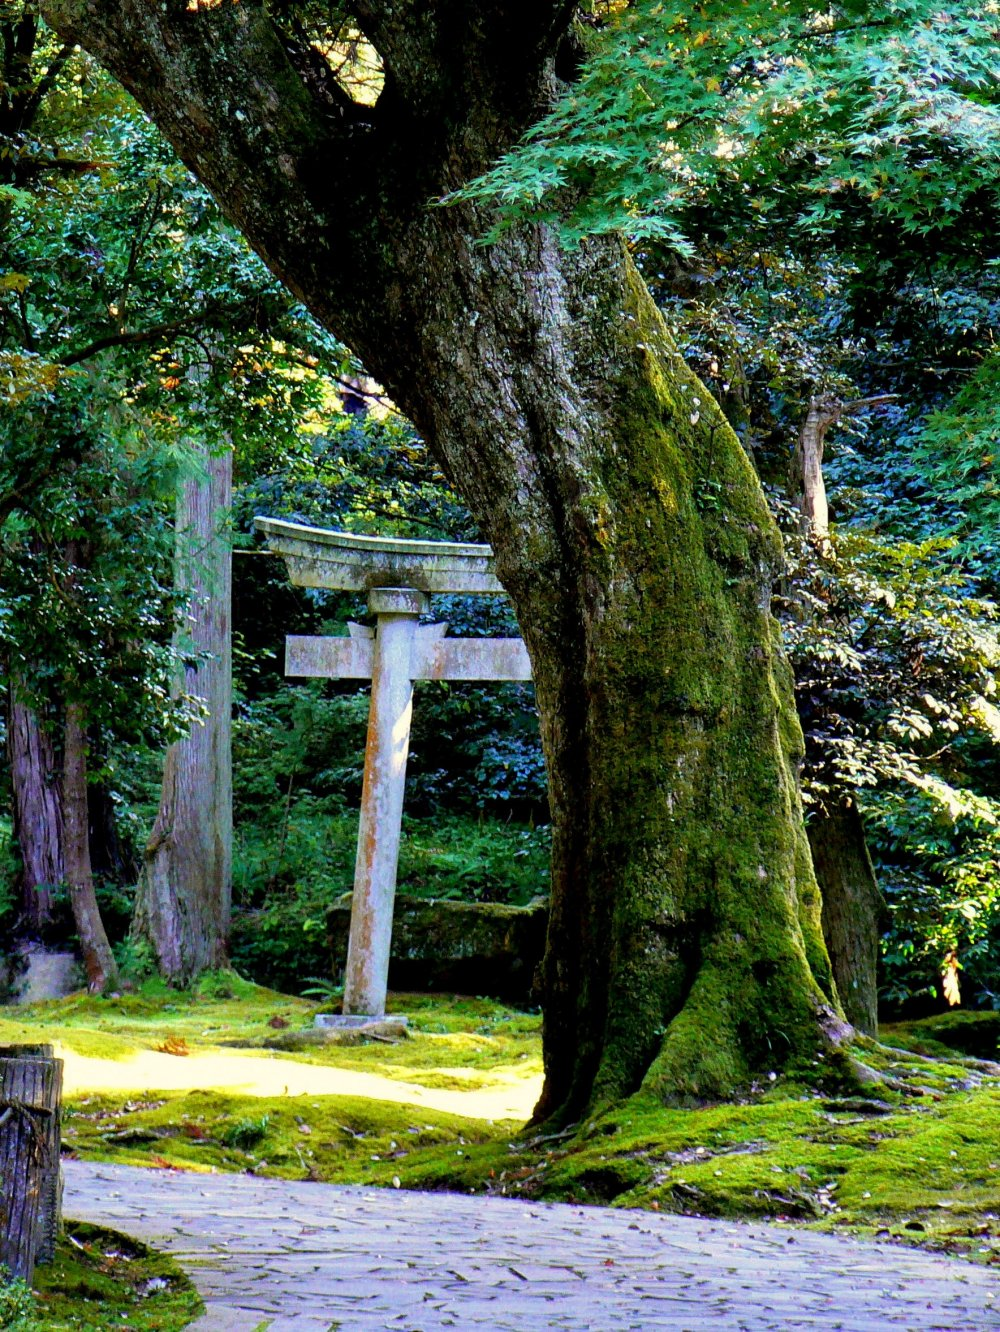 Stone torii behind a moss covered tree trunk